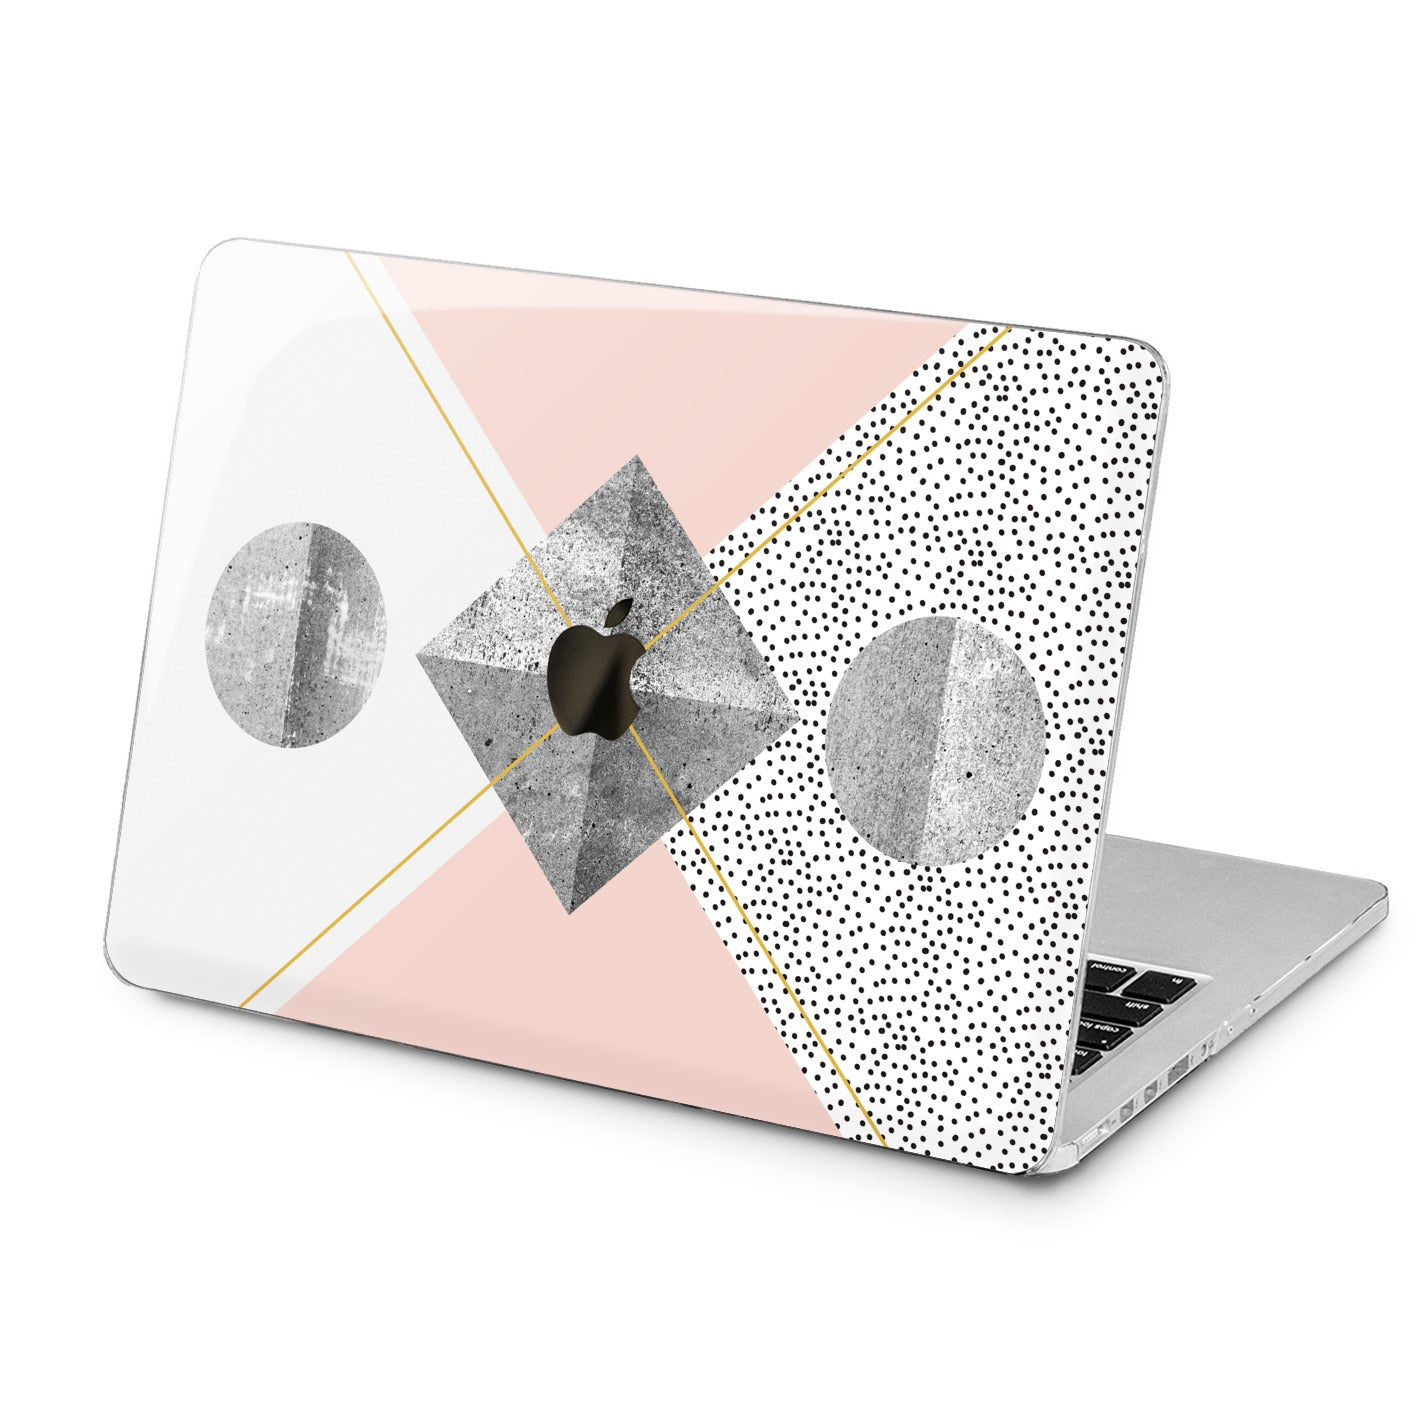 Lex Altern Lex Altern Pastel Geometry Case for your Laptop Apple Macbook.